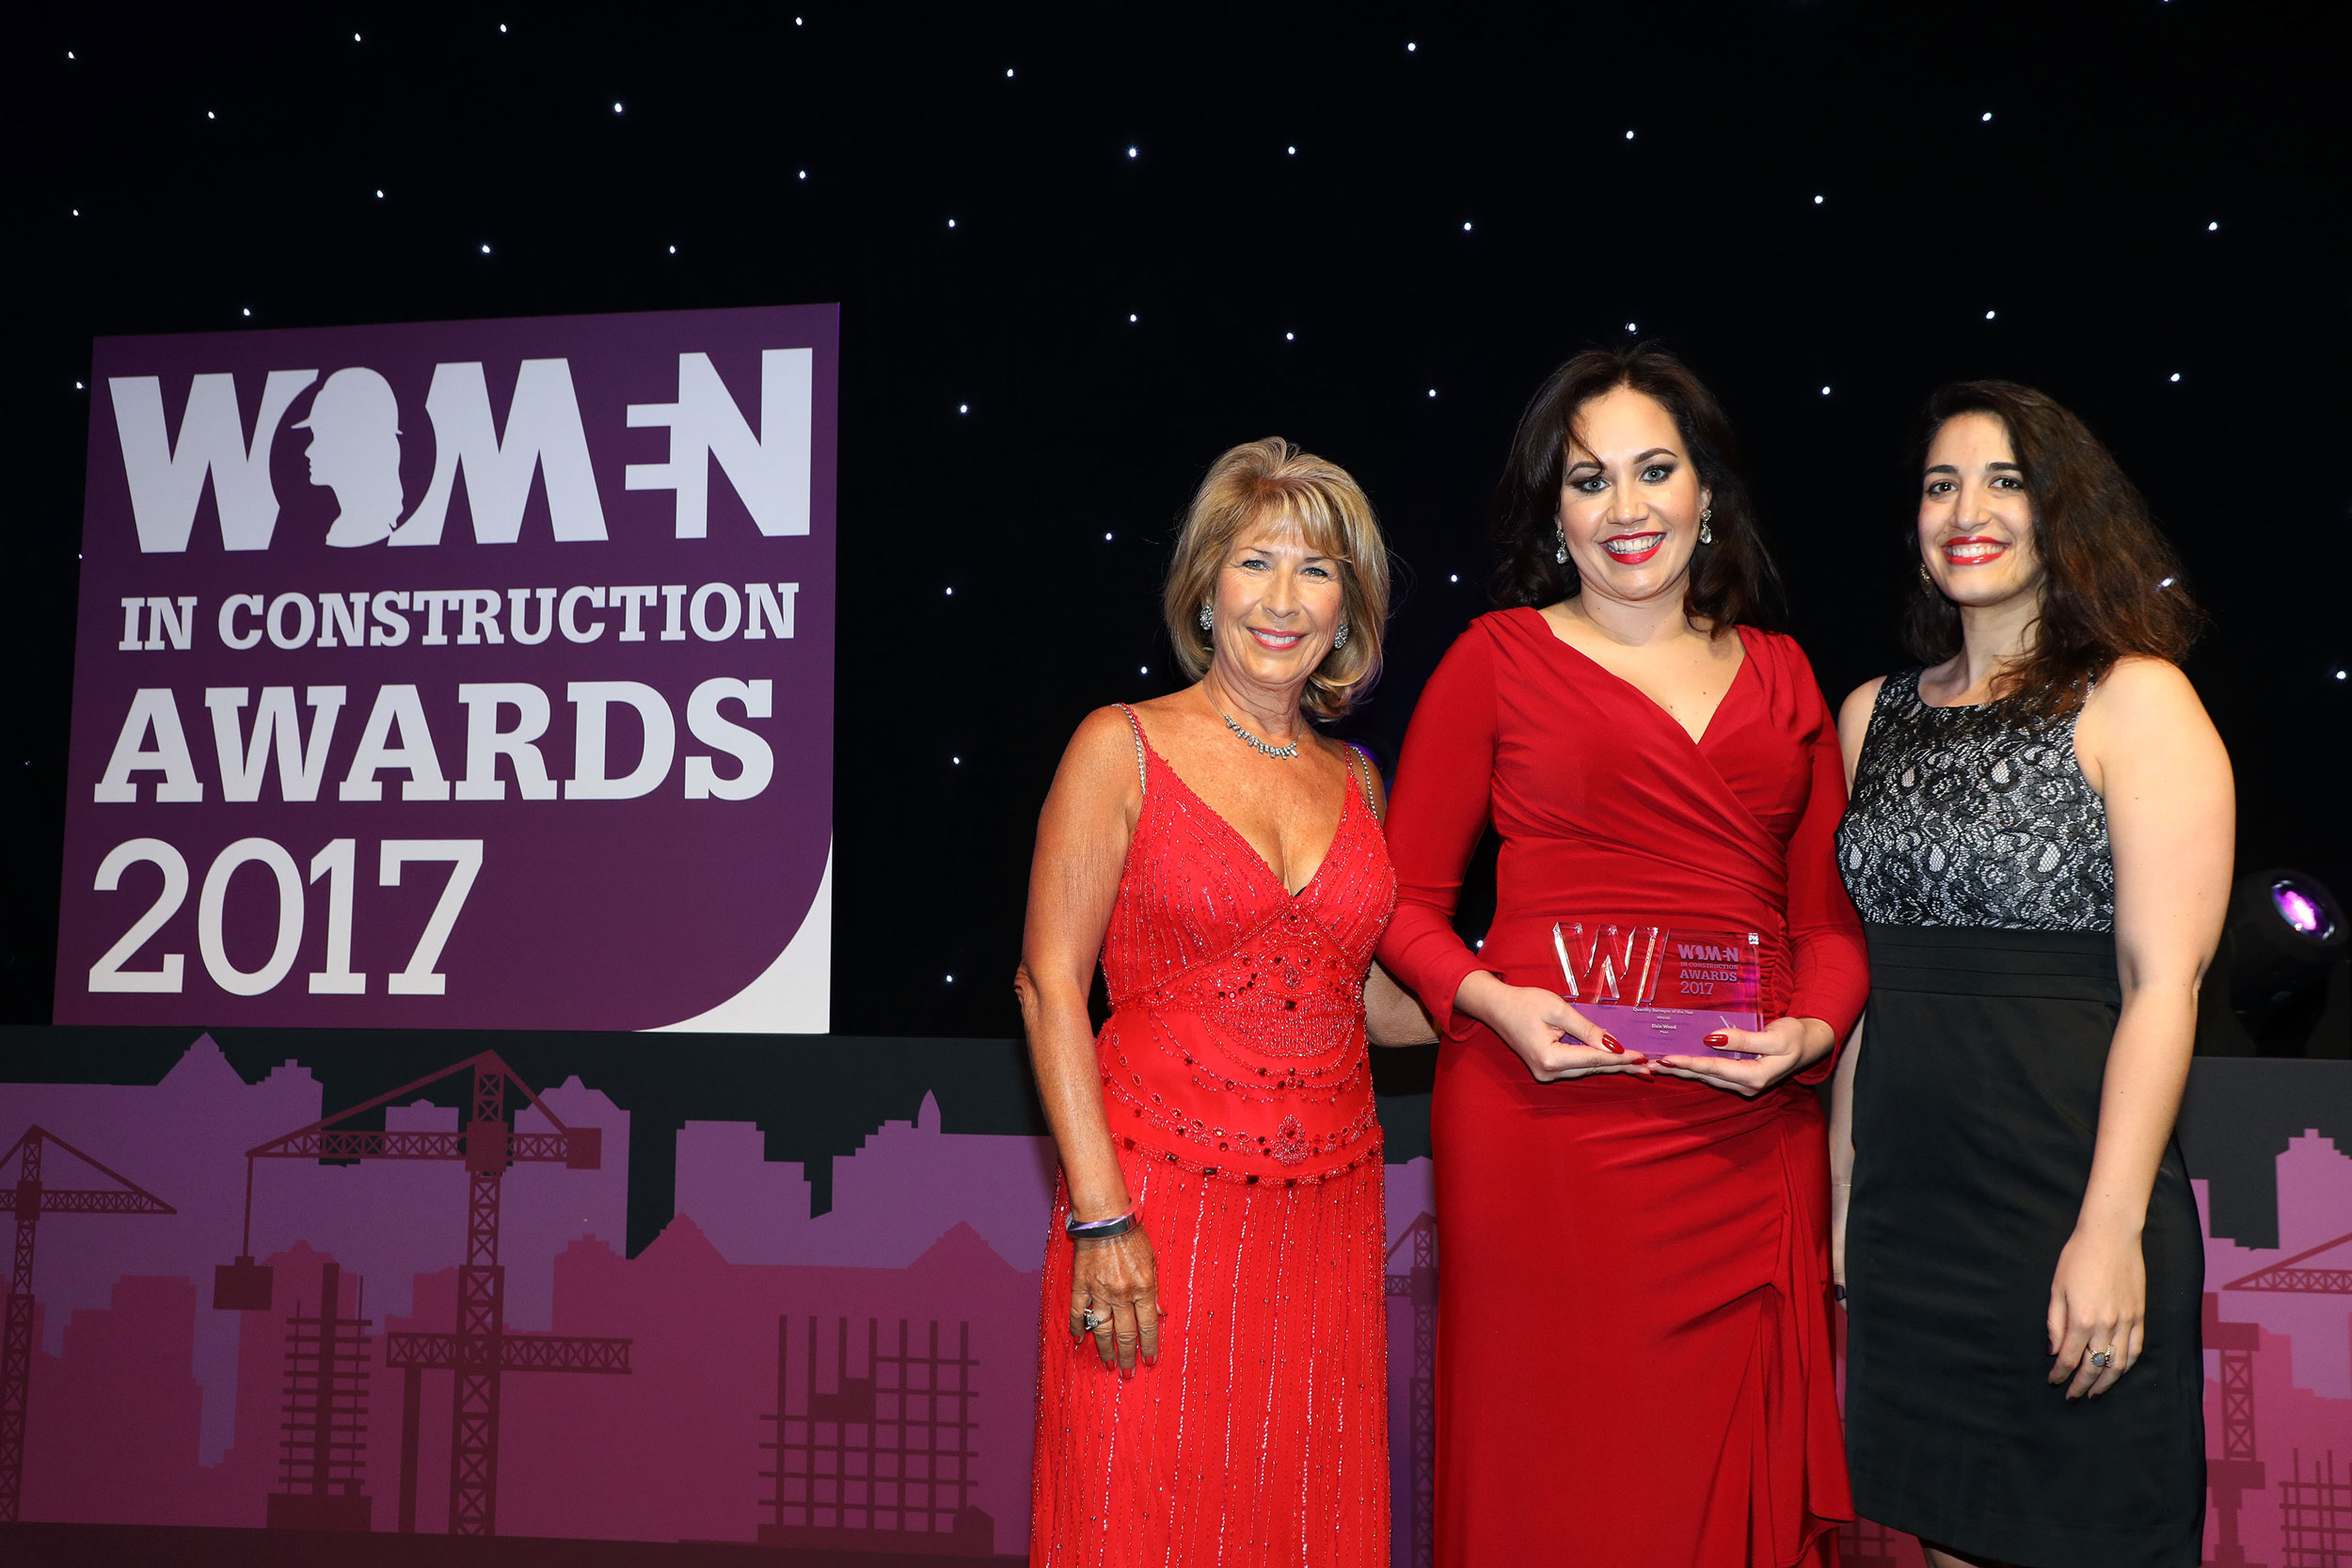 Women in Construction Awards 2017 - Mace Group